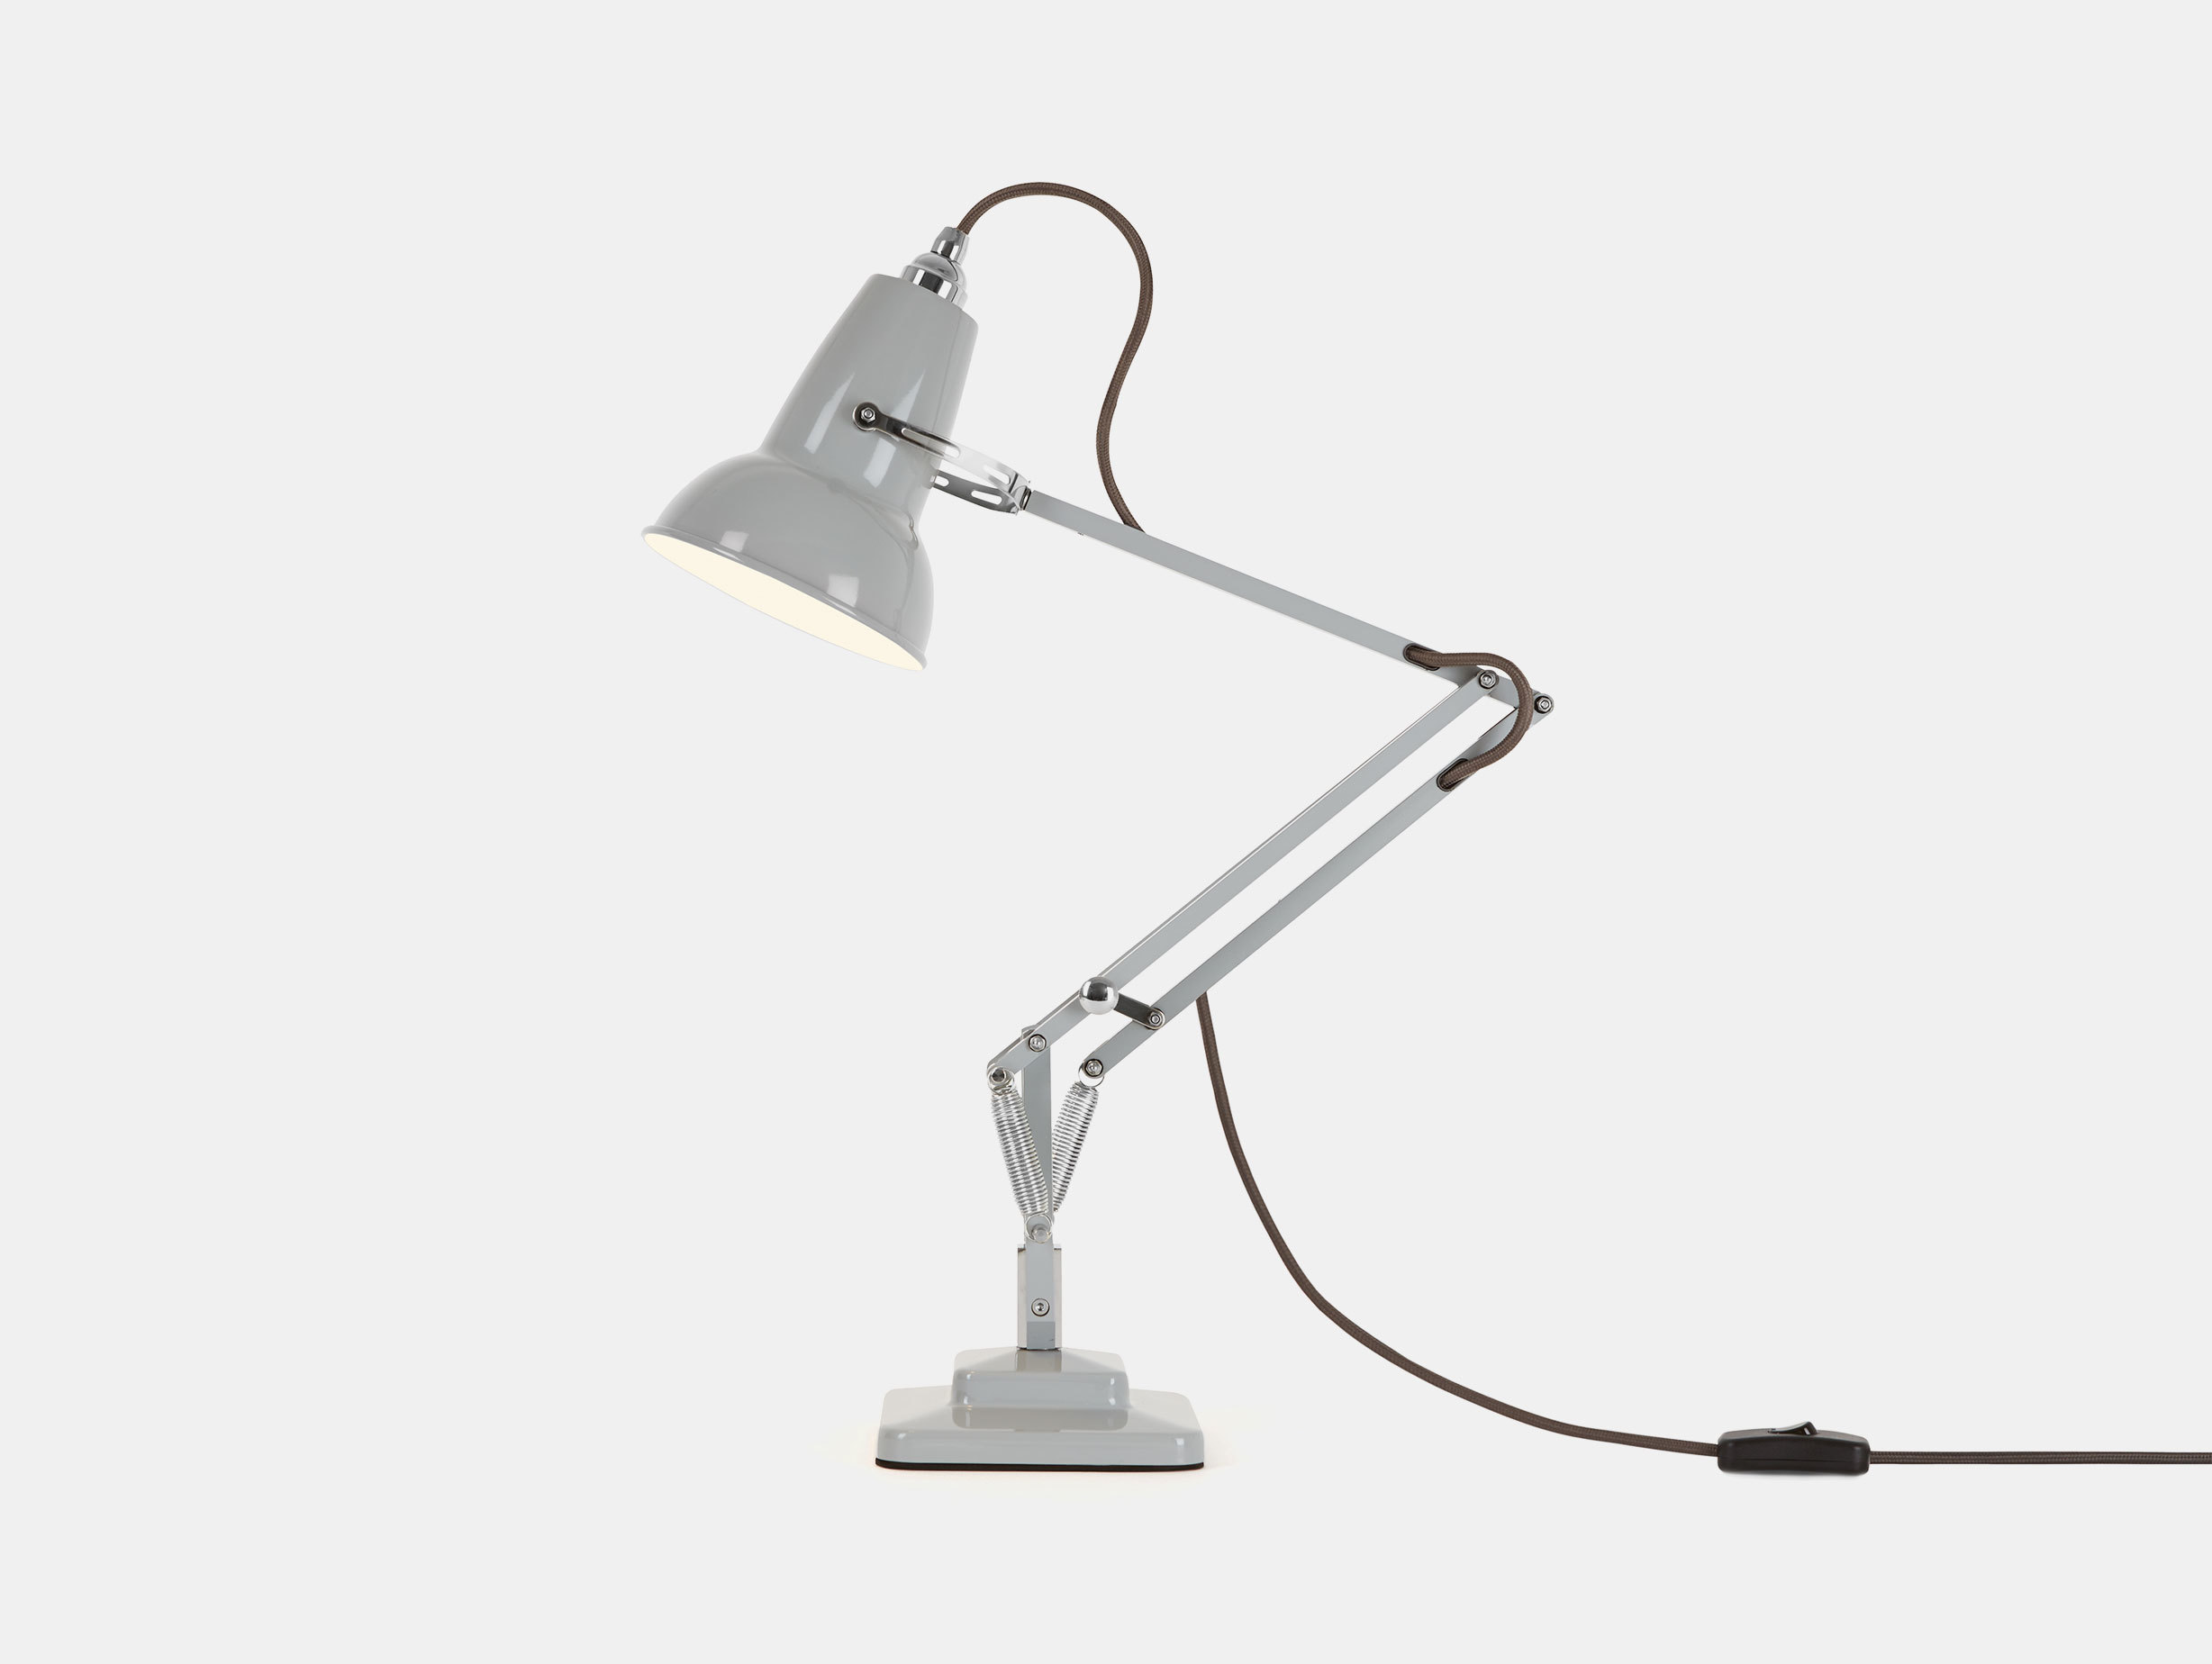 Anglepoise 1227 Mini Desk Lamp image 3